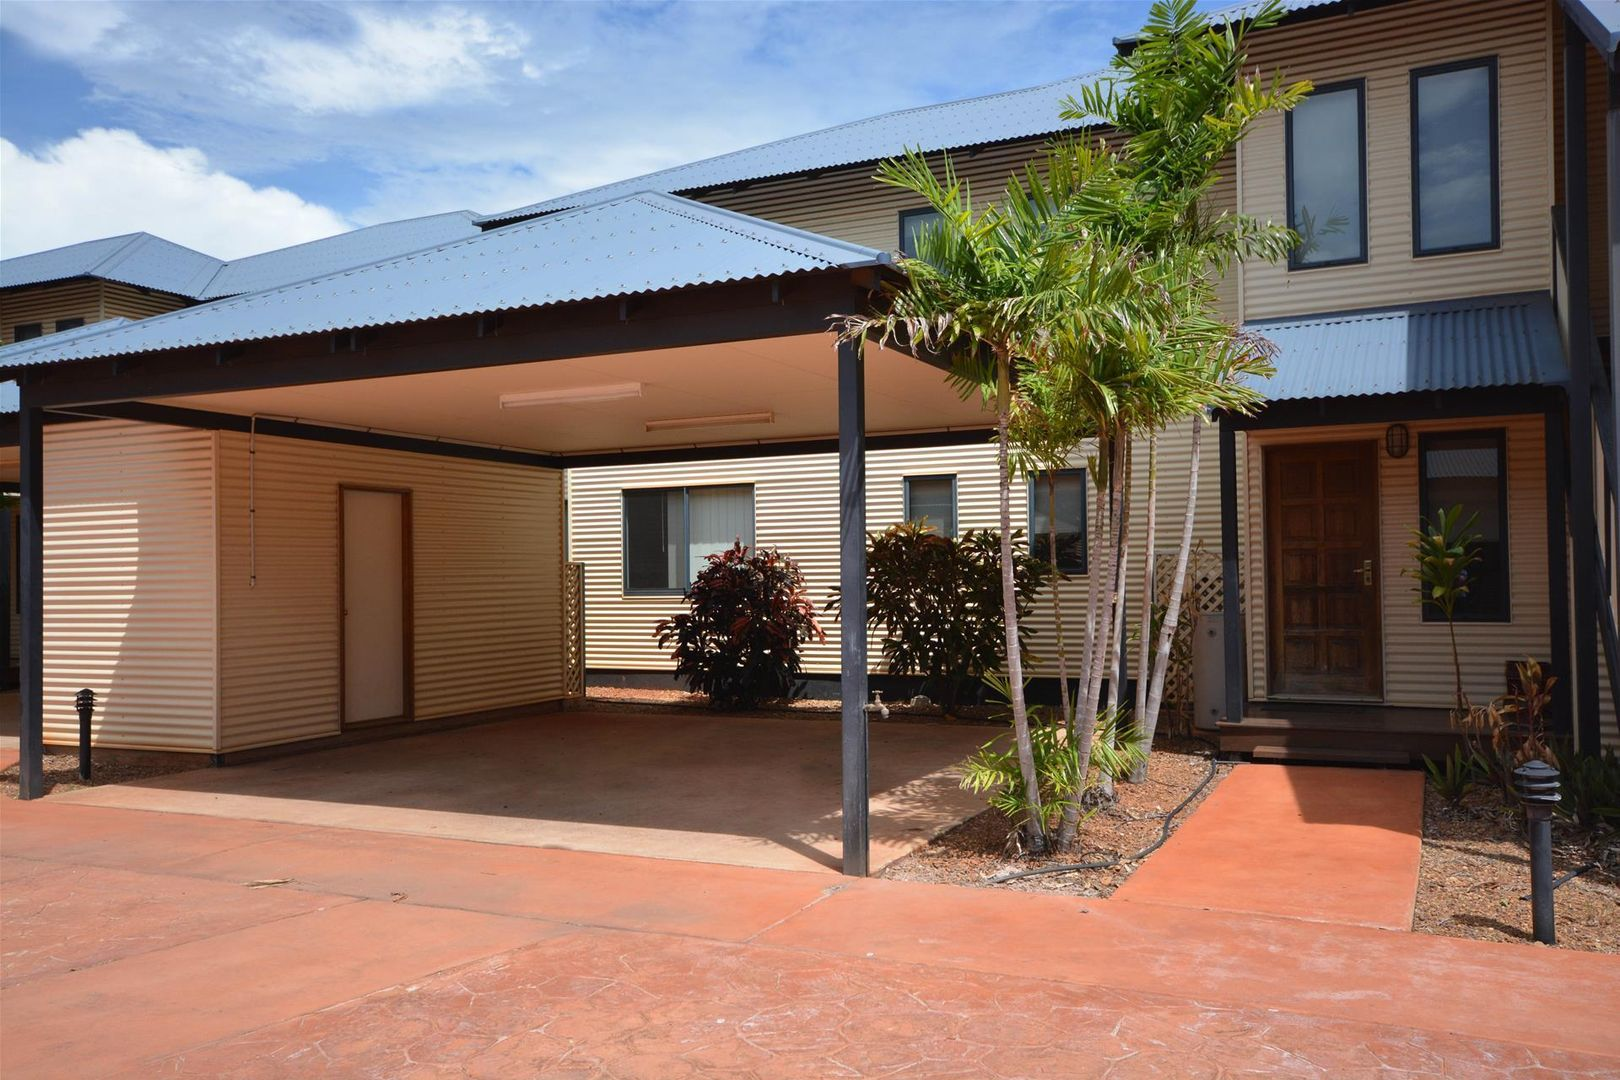 7/8 Seko Place, Cable Beach WA 6726, Image 0